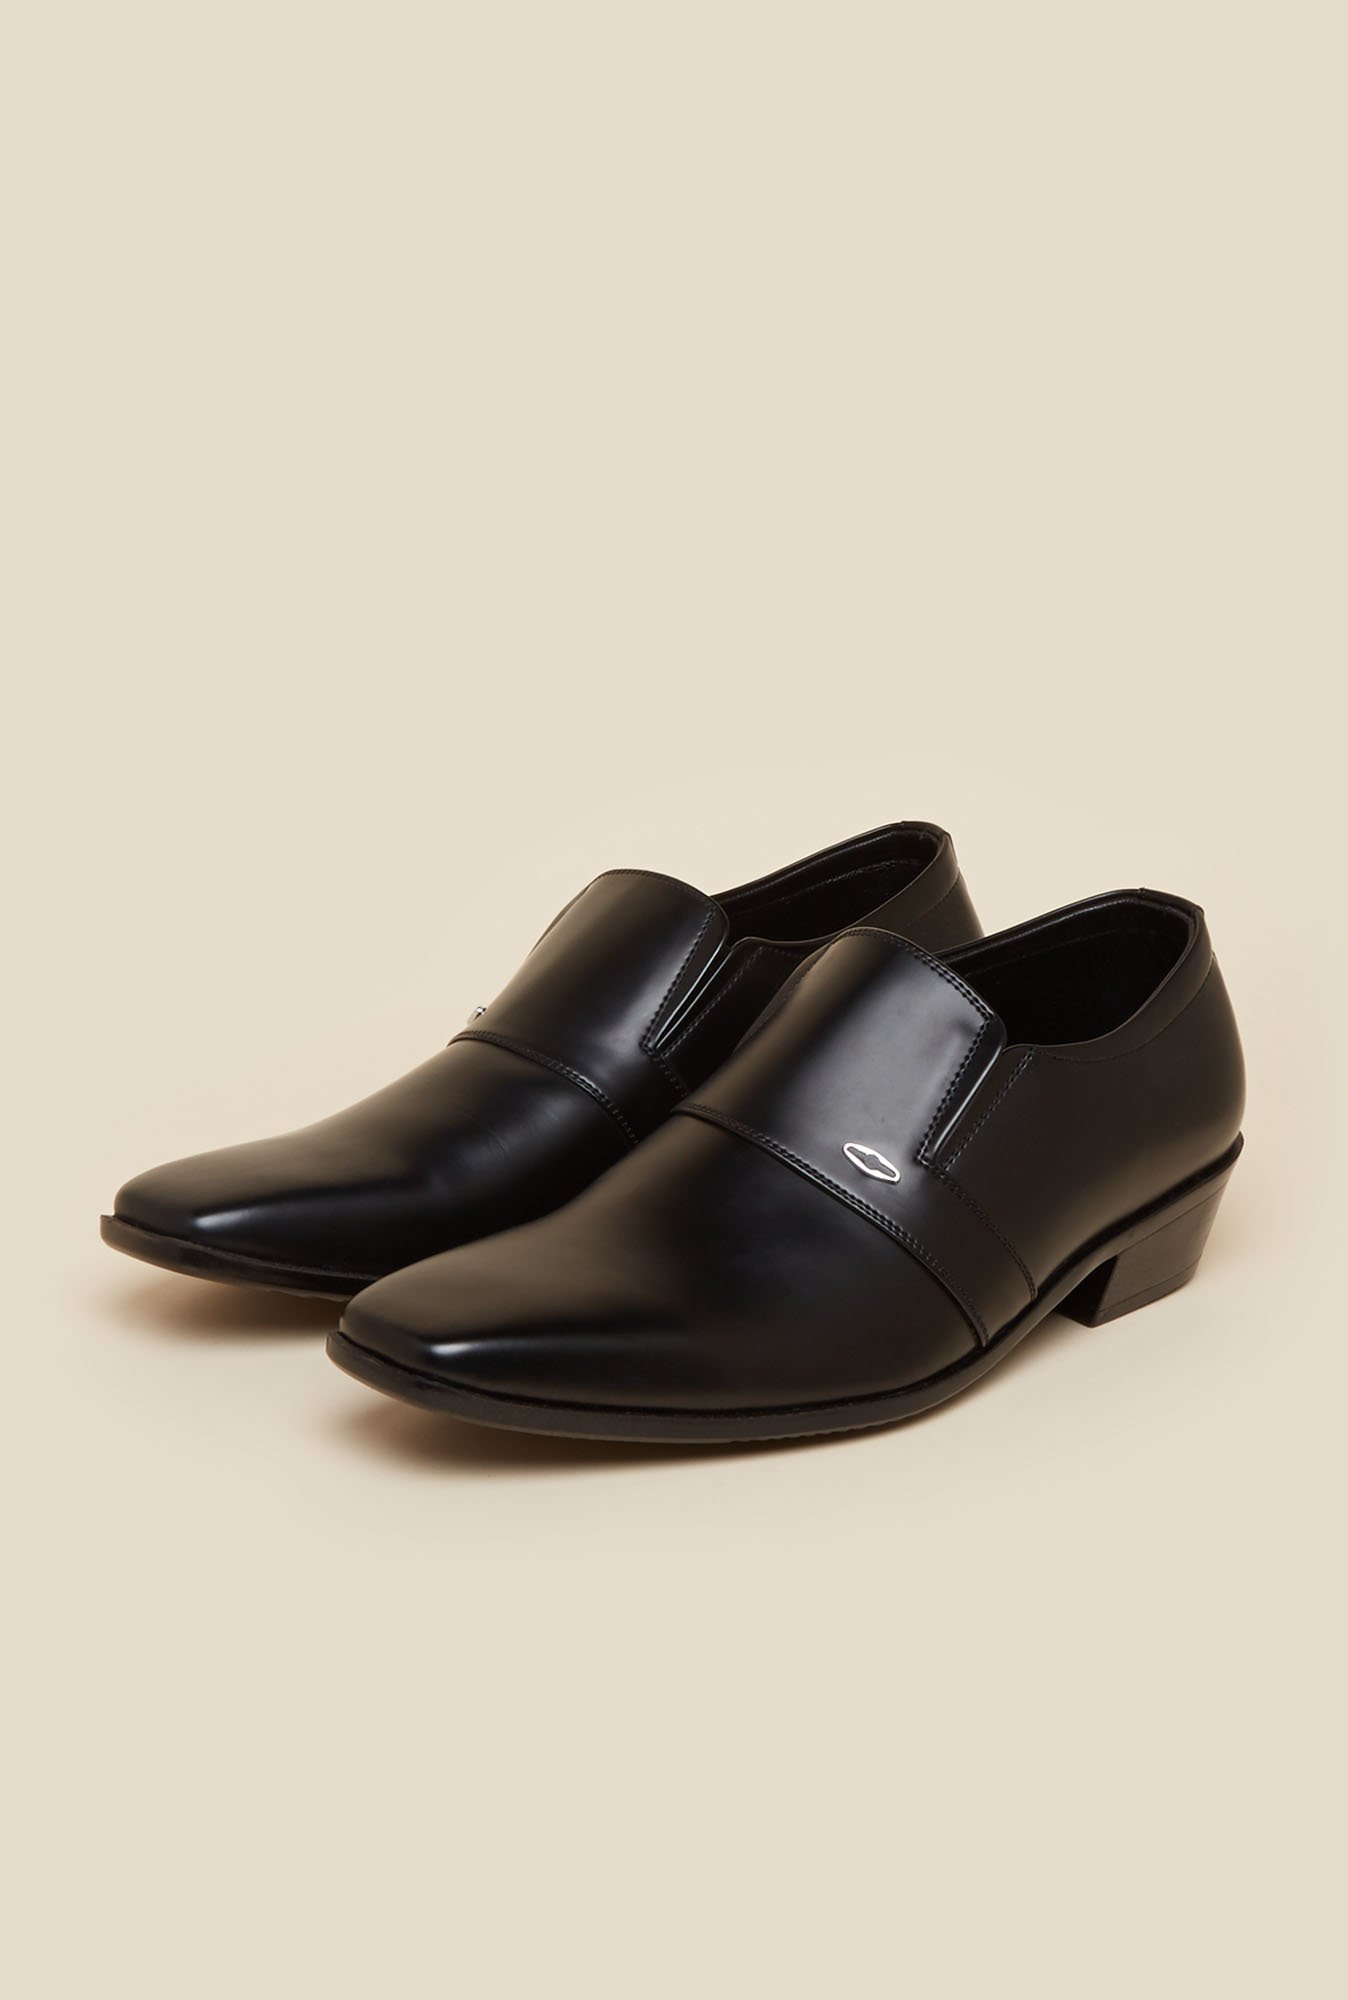 Metro Black Leather Formal Slip-Ons